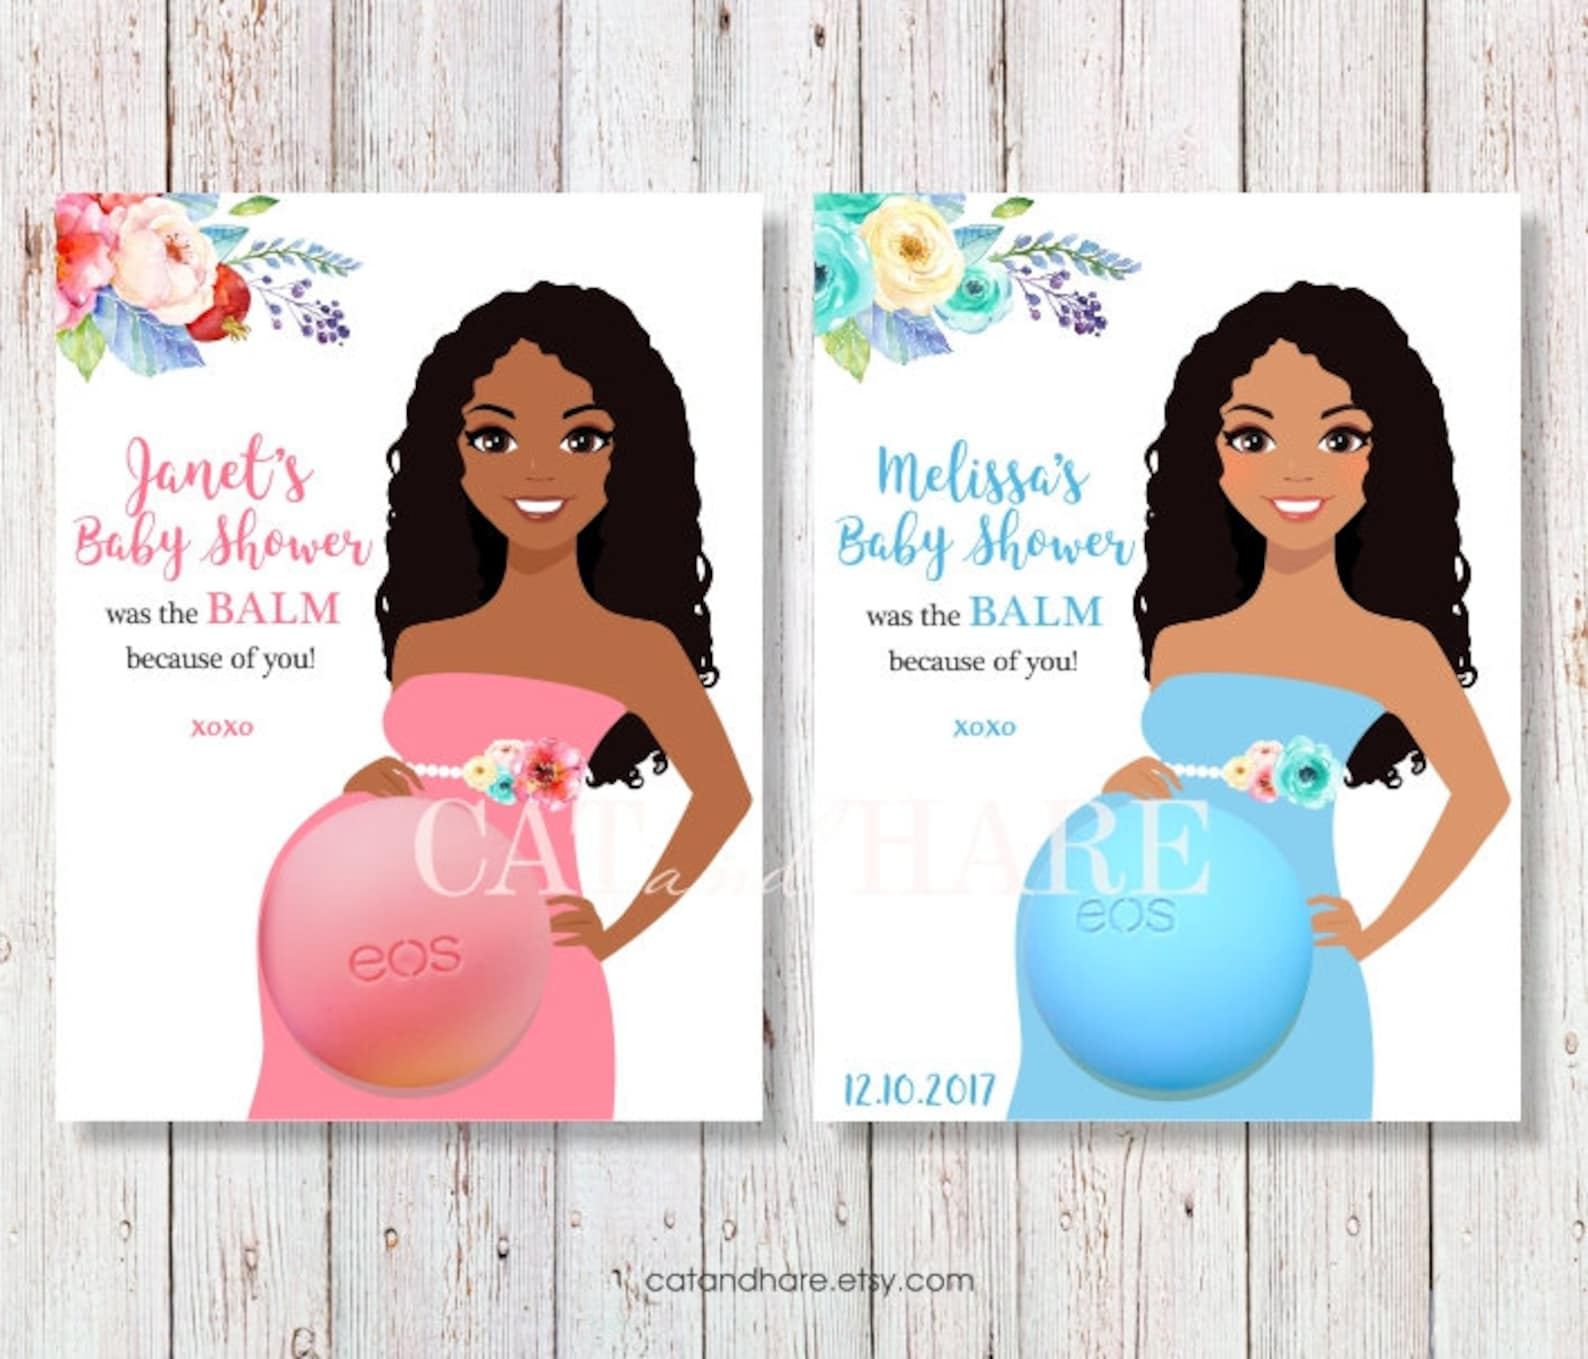 Eos baby shower favors